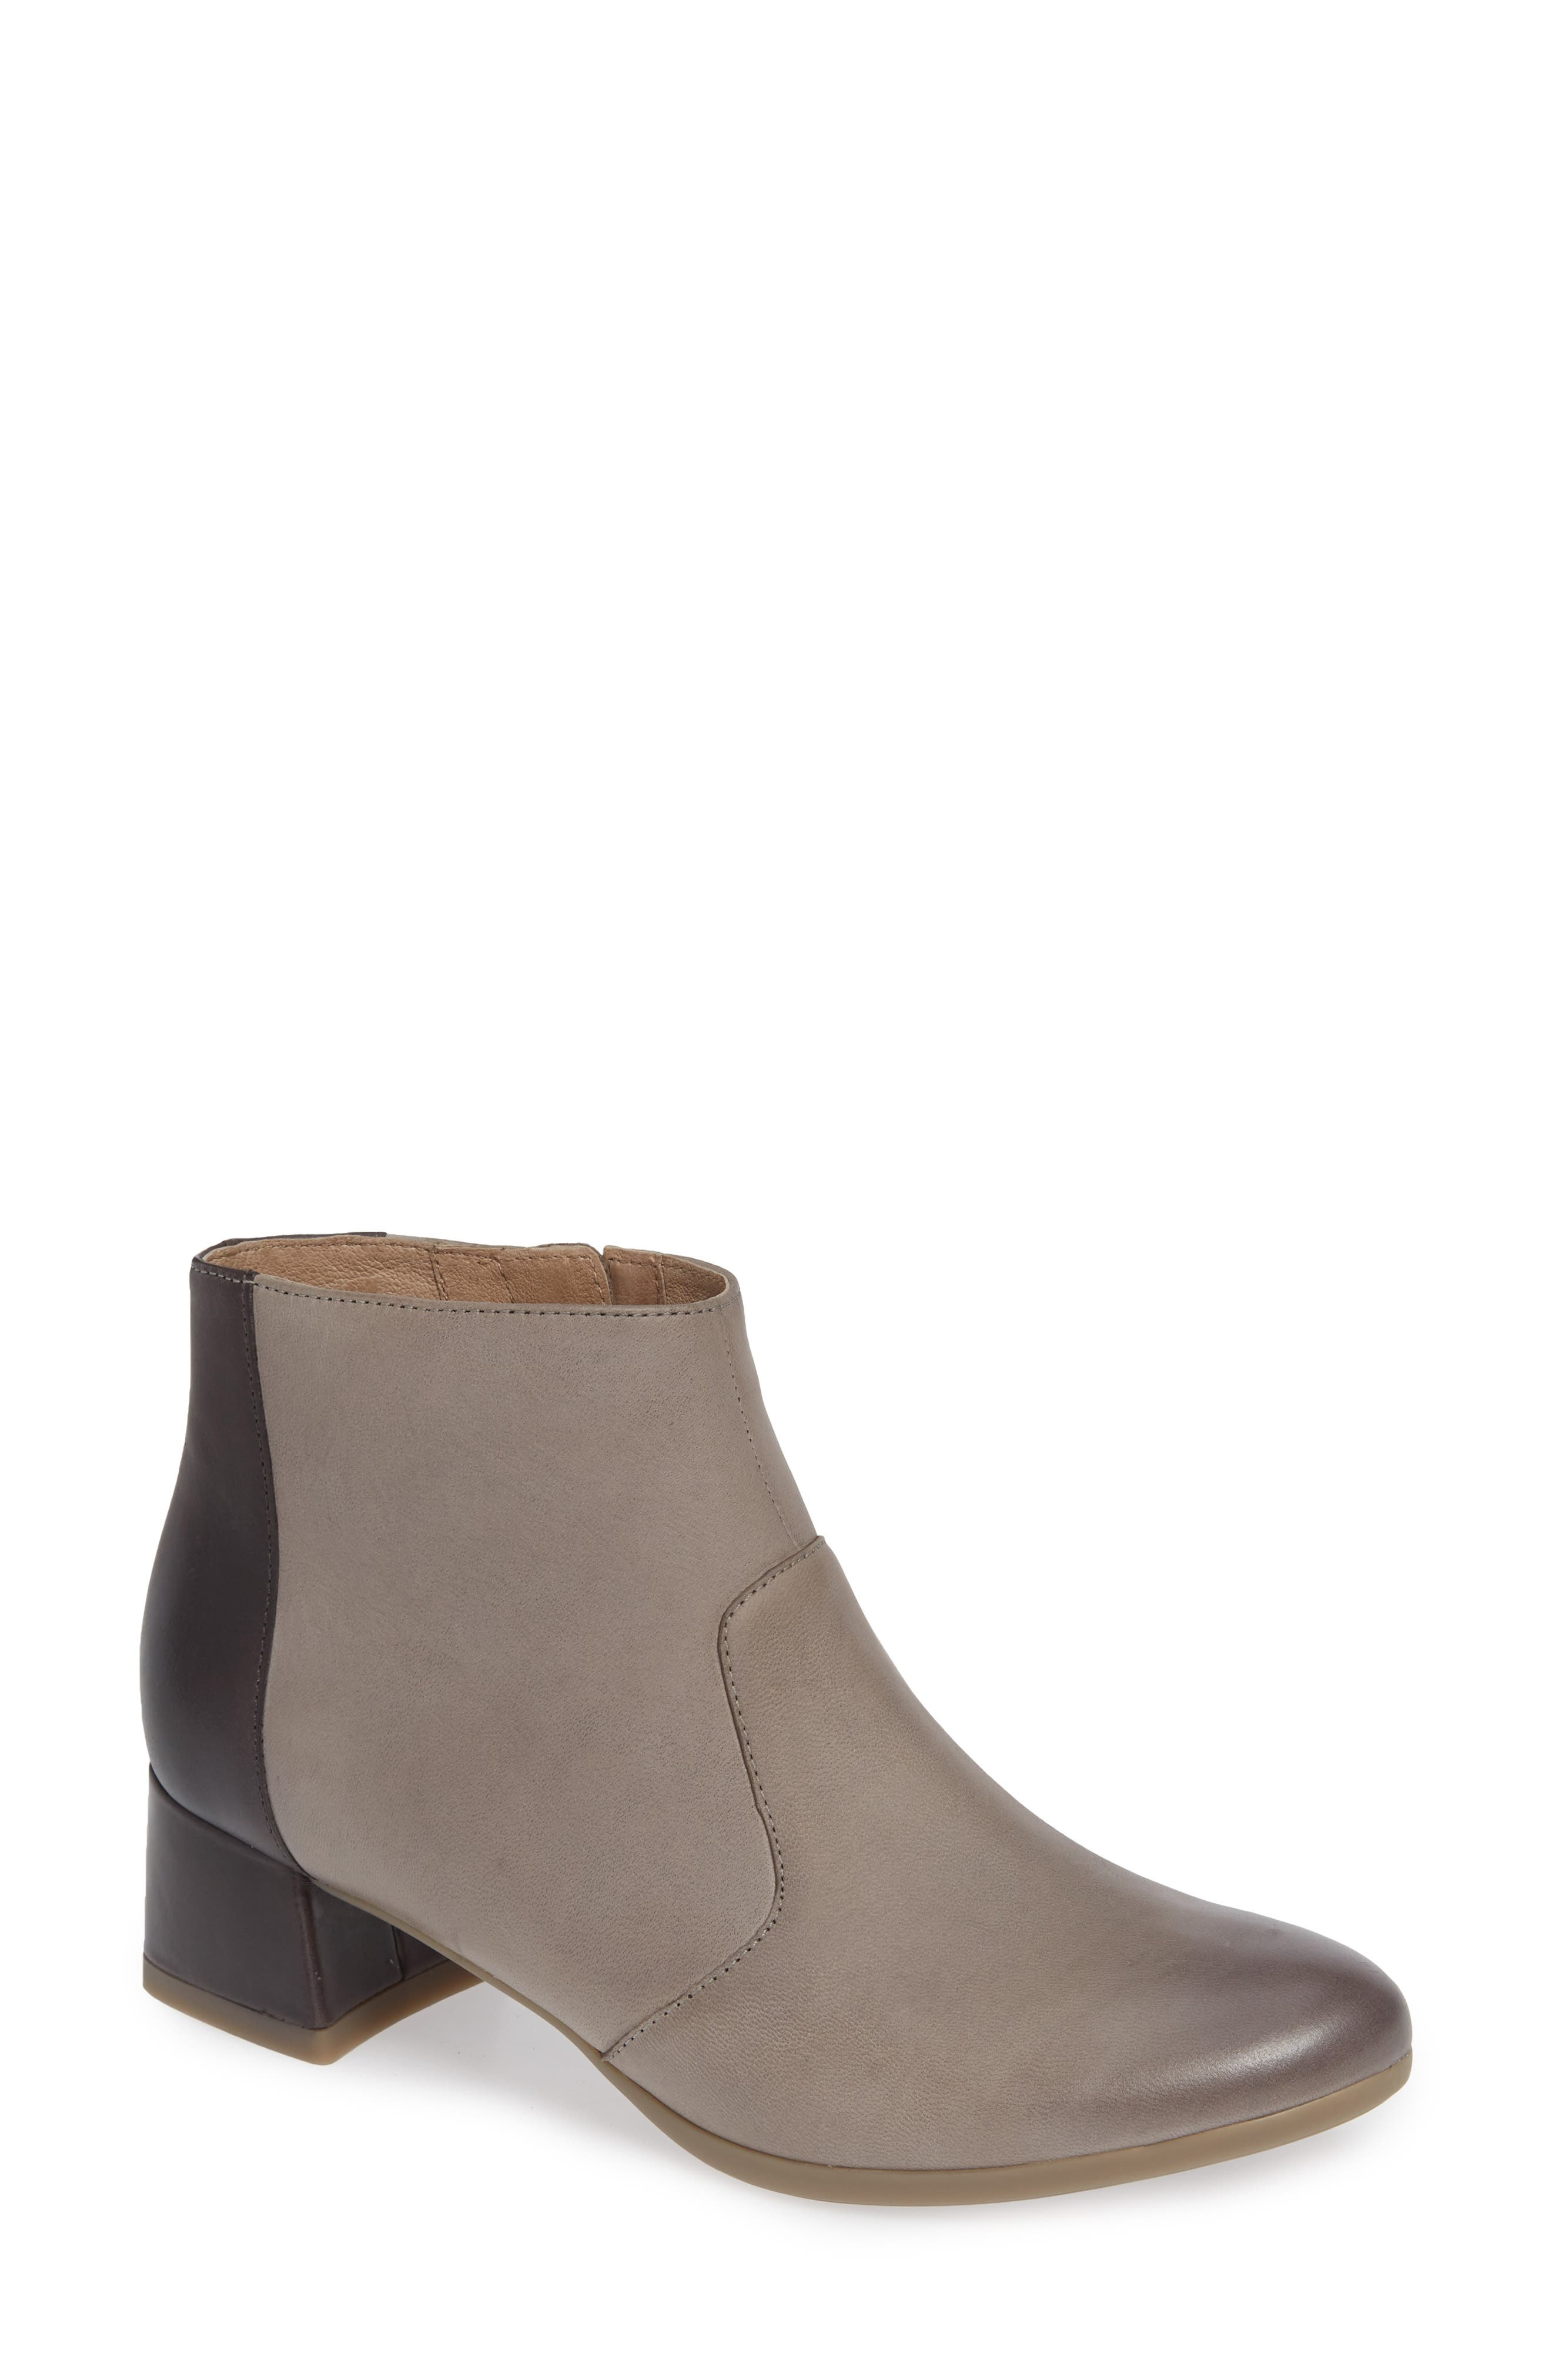 Petra Bootie,                             Main thumbnail 1, color,                             STONE BURNISHED NUBUCK LEATHER